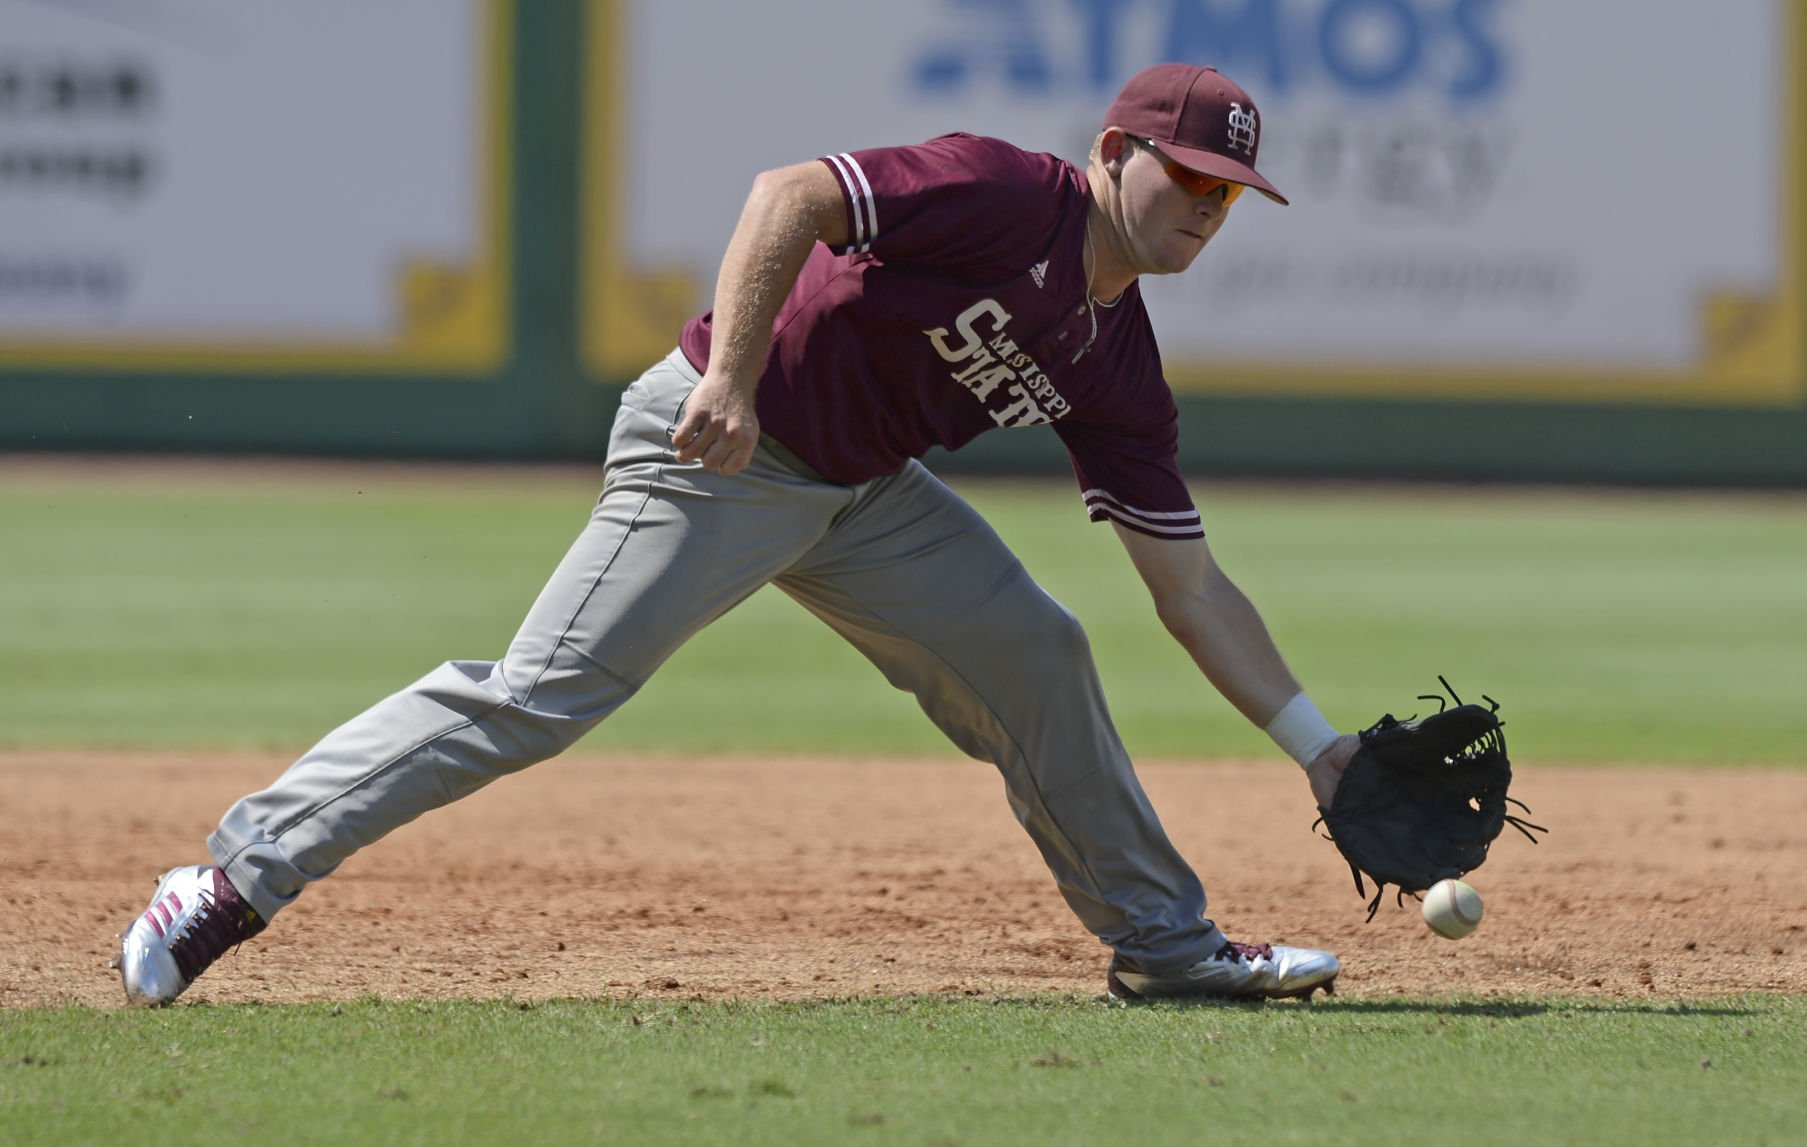 Aggies beat upstart Davidson in 15th; Louisville wins opener